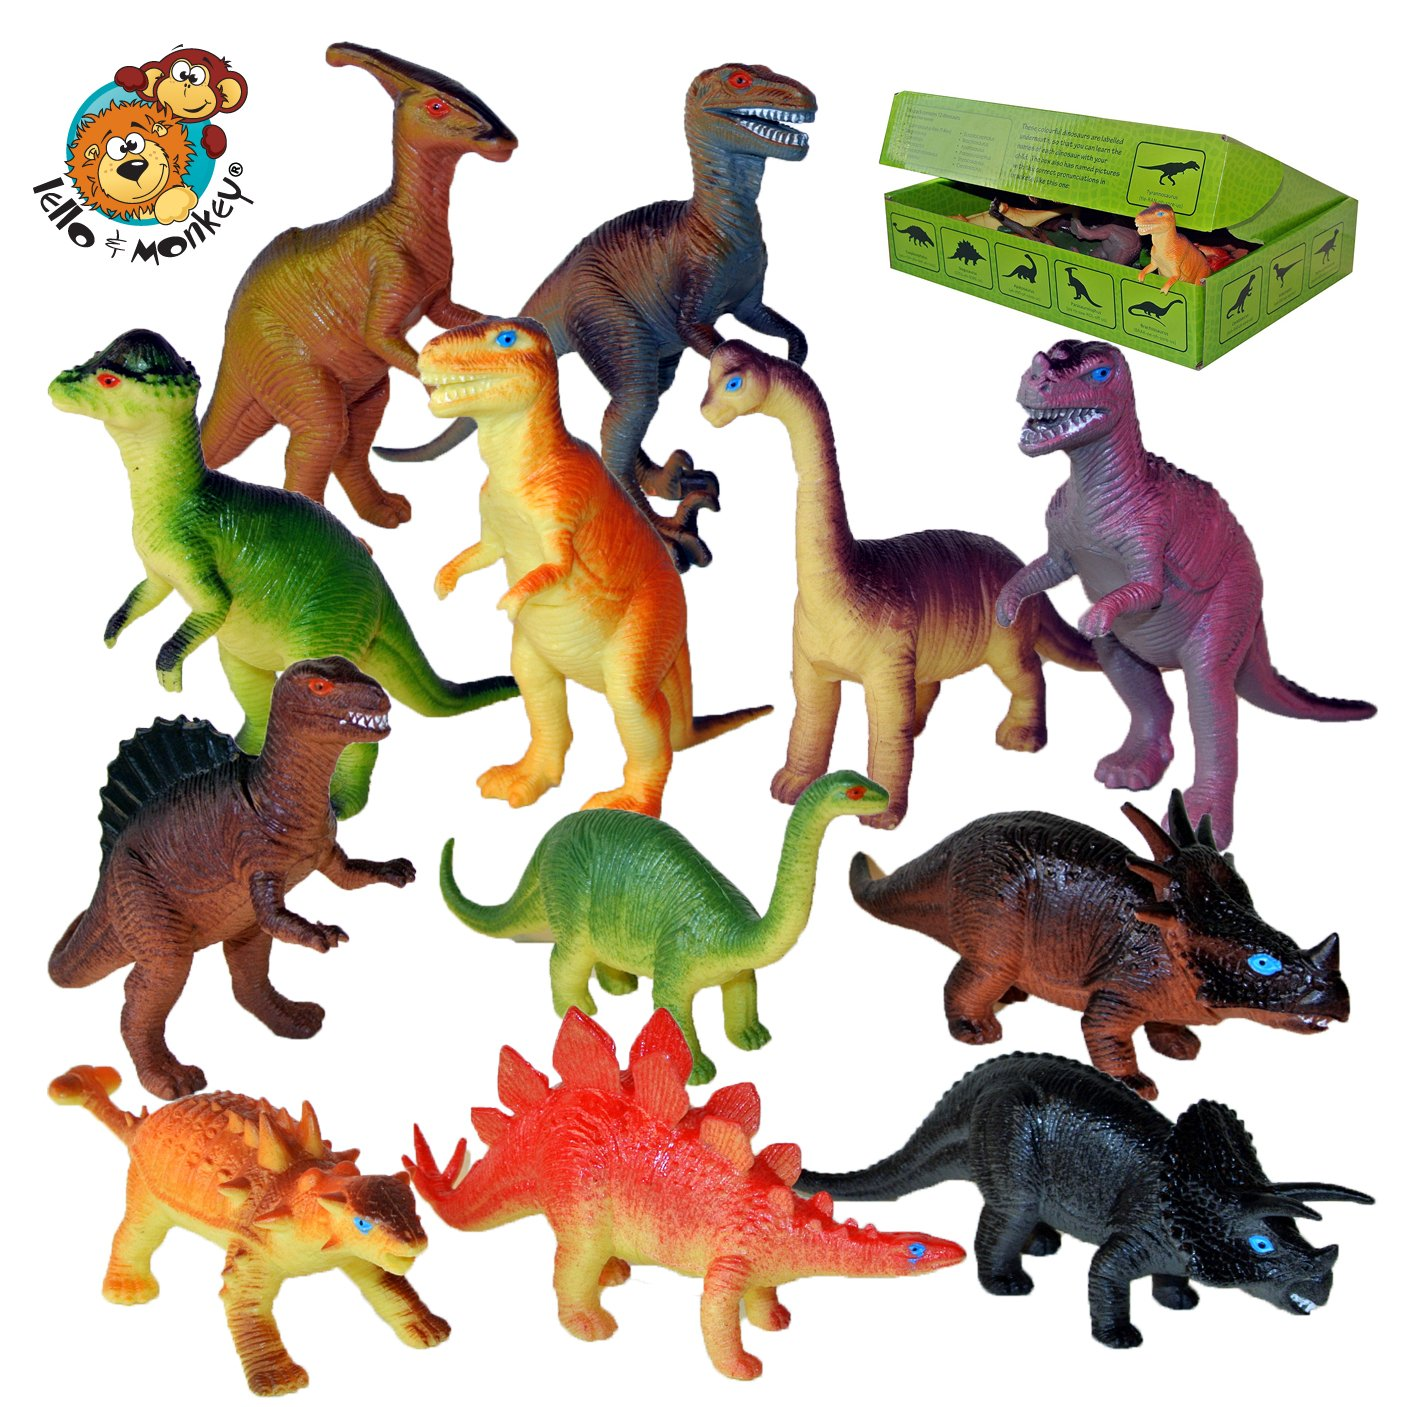 Dinosaur toy plastic figures set of 12 set with names and